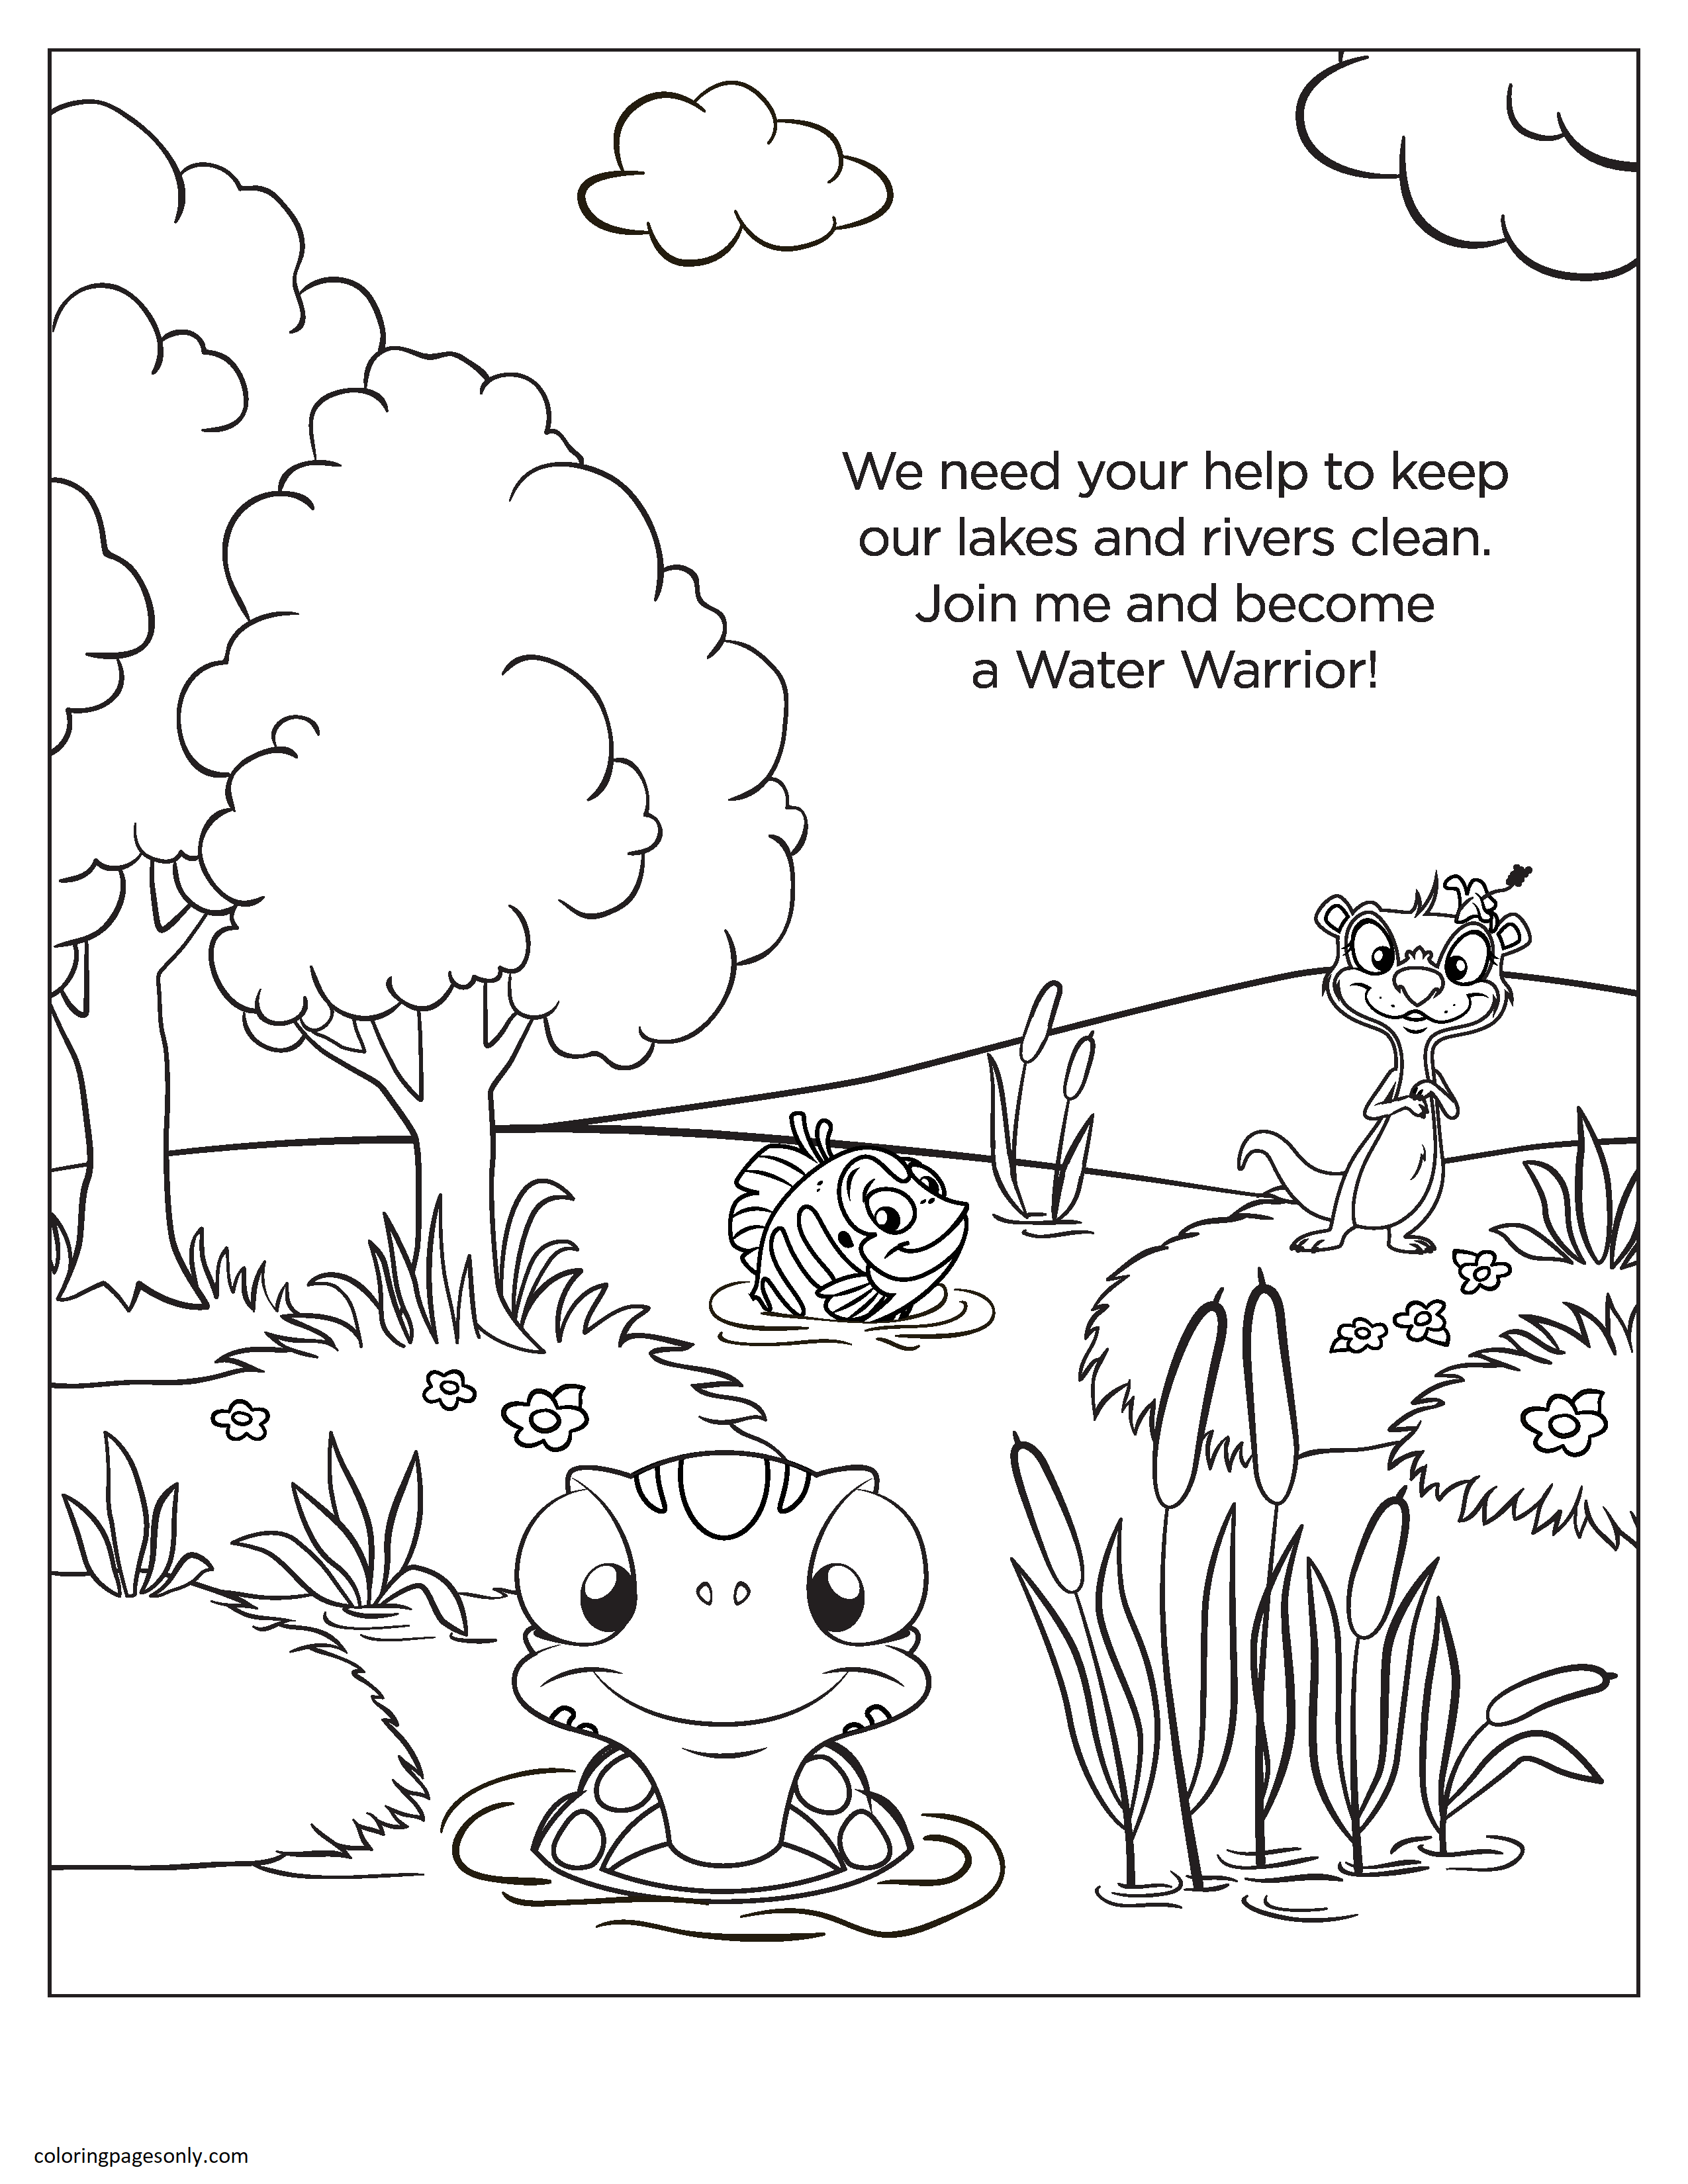 Rivers and Animal Nature Coloring Page